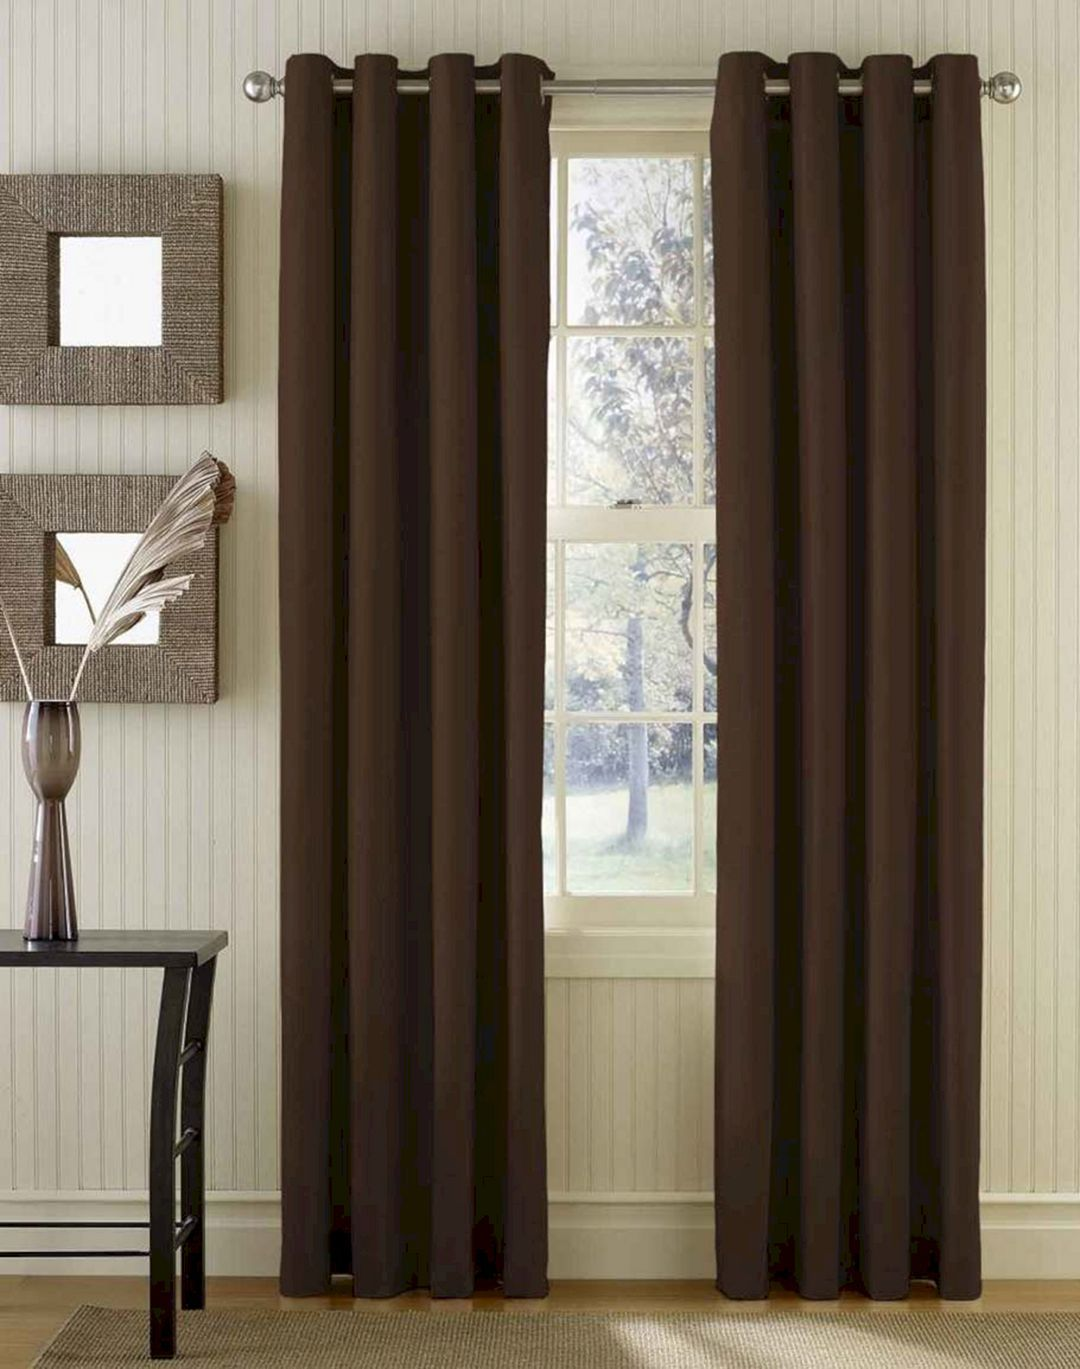 40 Beautiful Modern Curtain Design To Make Scenery Your Living